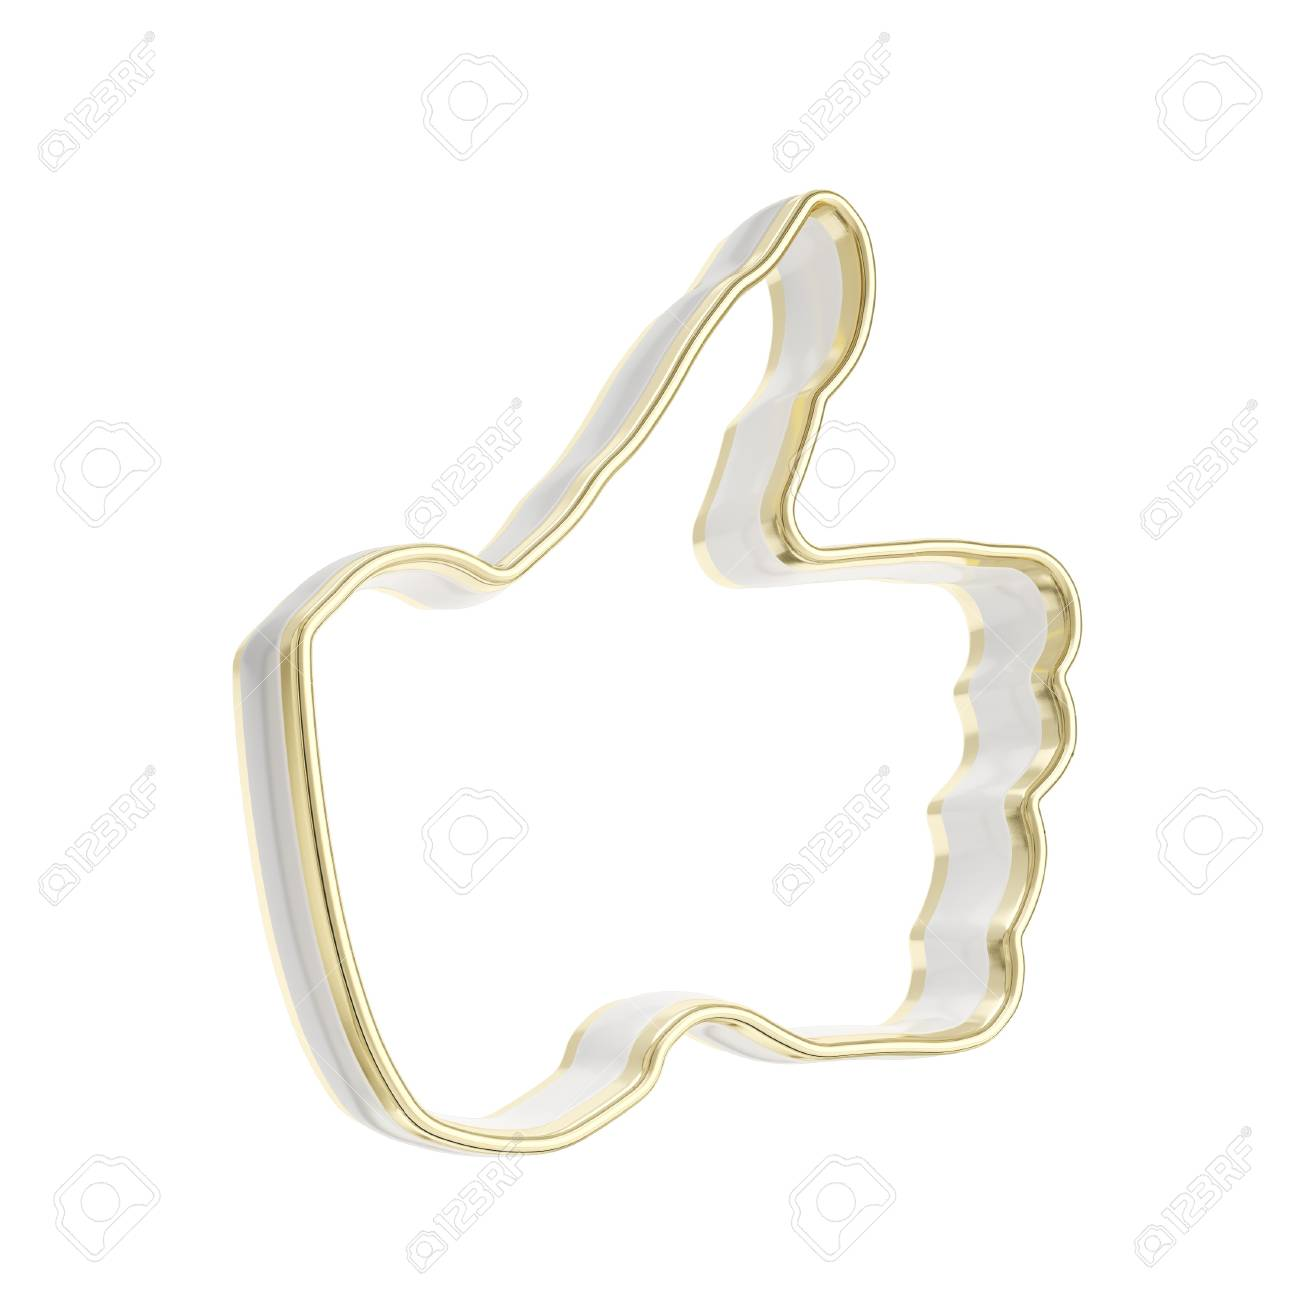 Golden approve like glossy sign emblem Stock Photo - 14293999